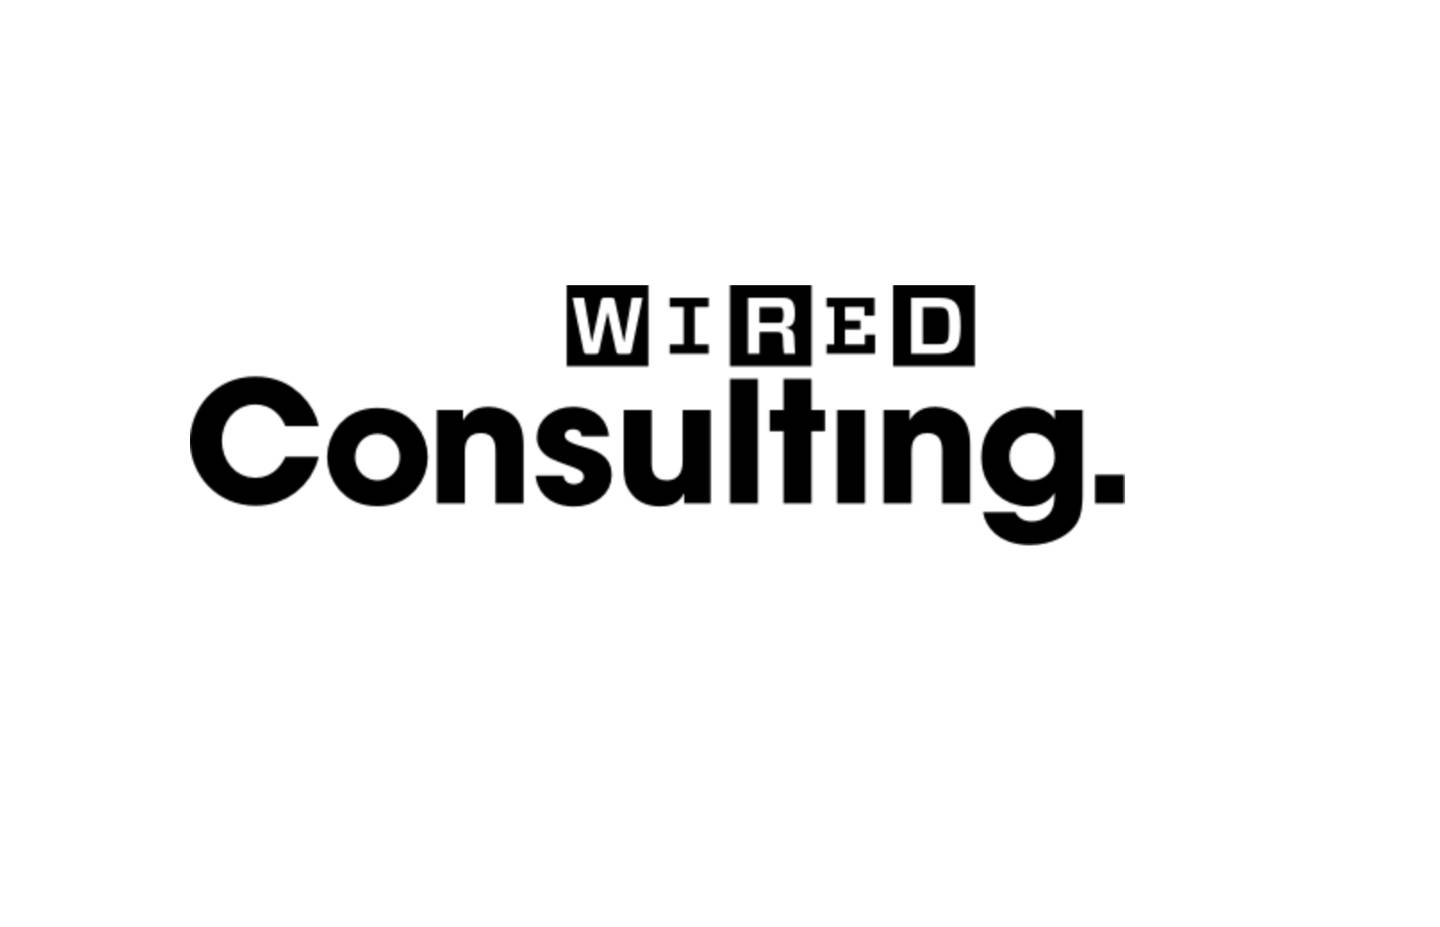 wired consulting.jpeg